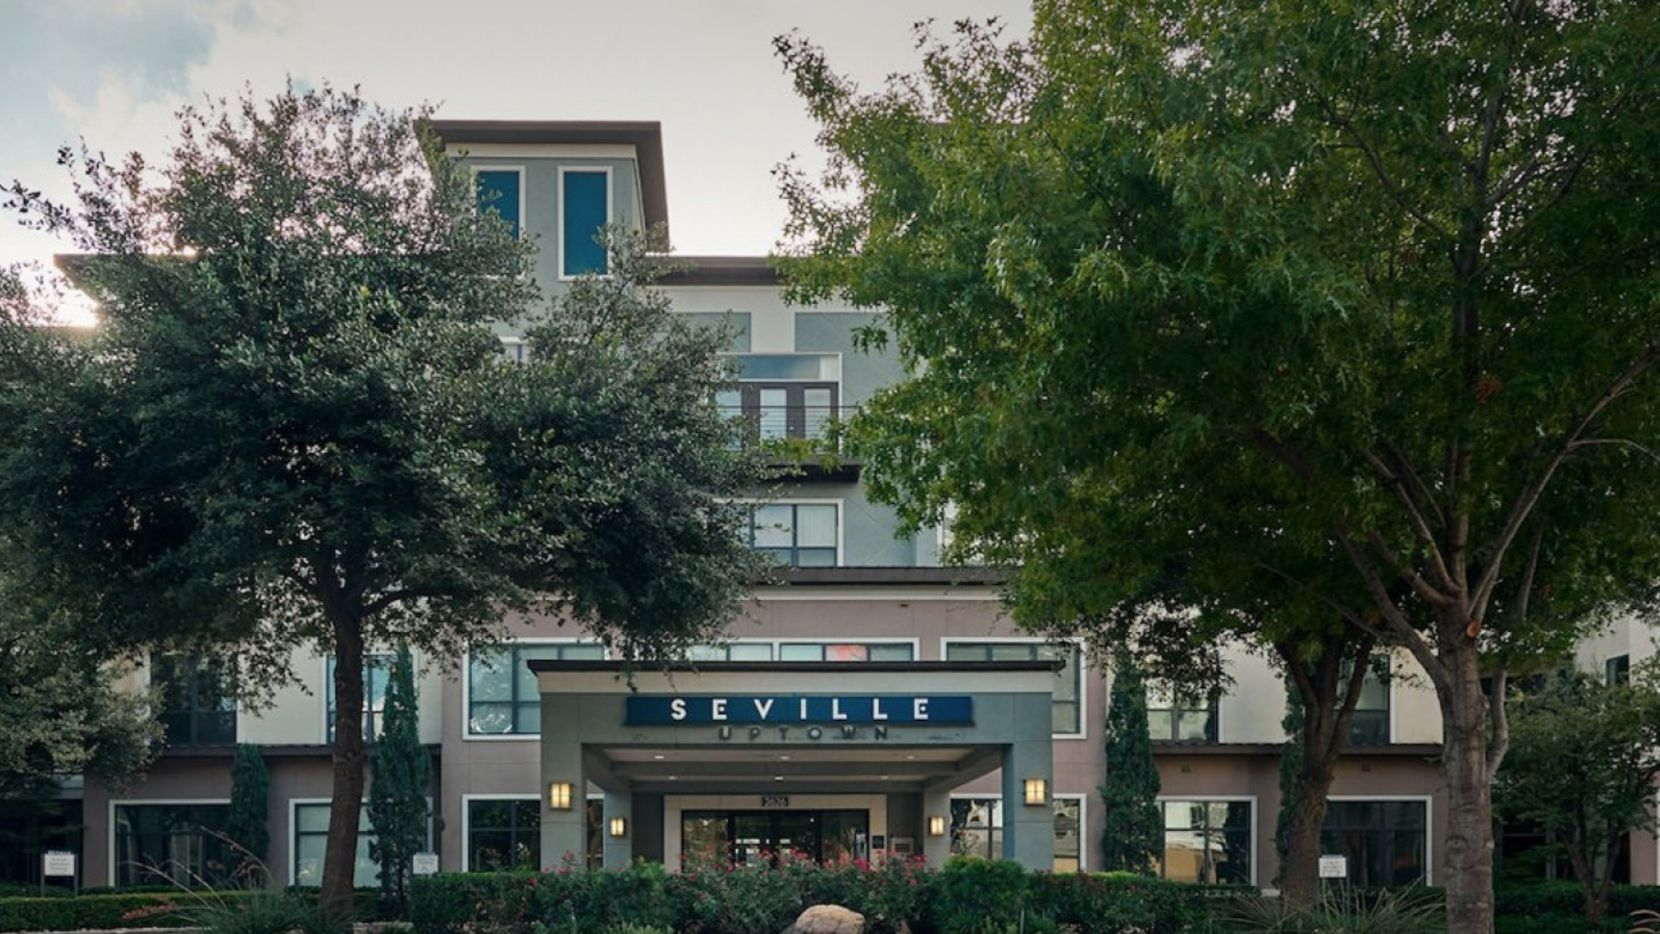 The Seville apartments are located a block off Maple Avenue in Dallas' Uptown district.